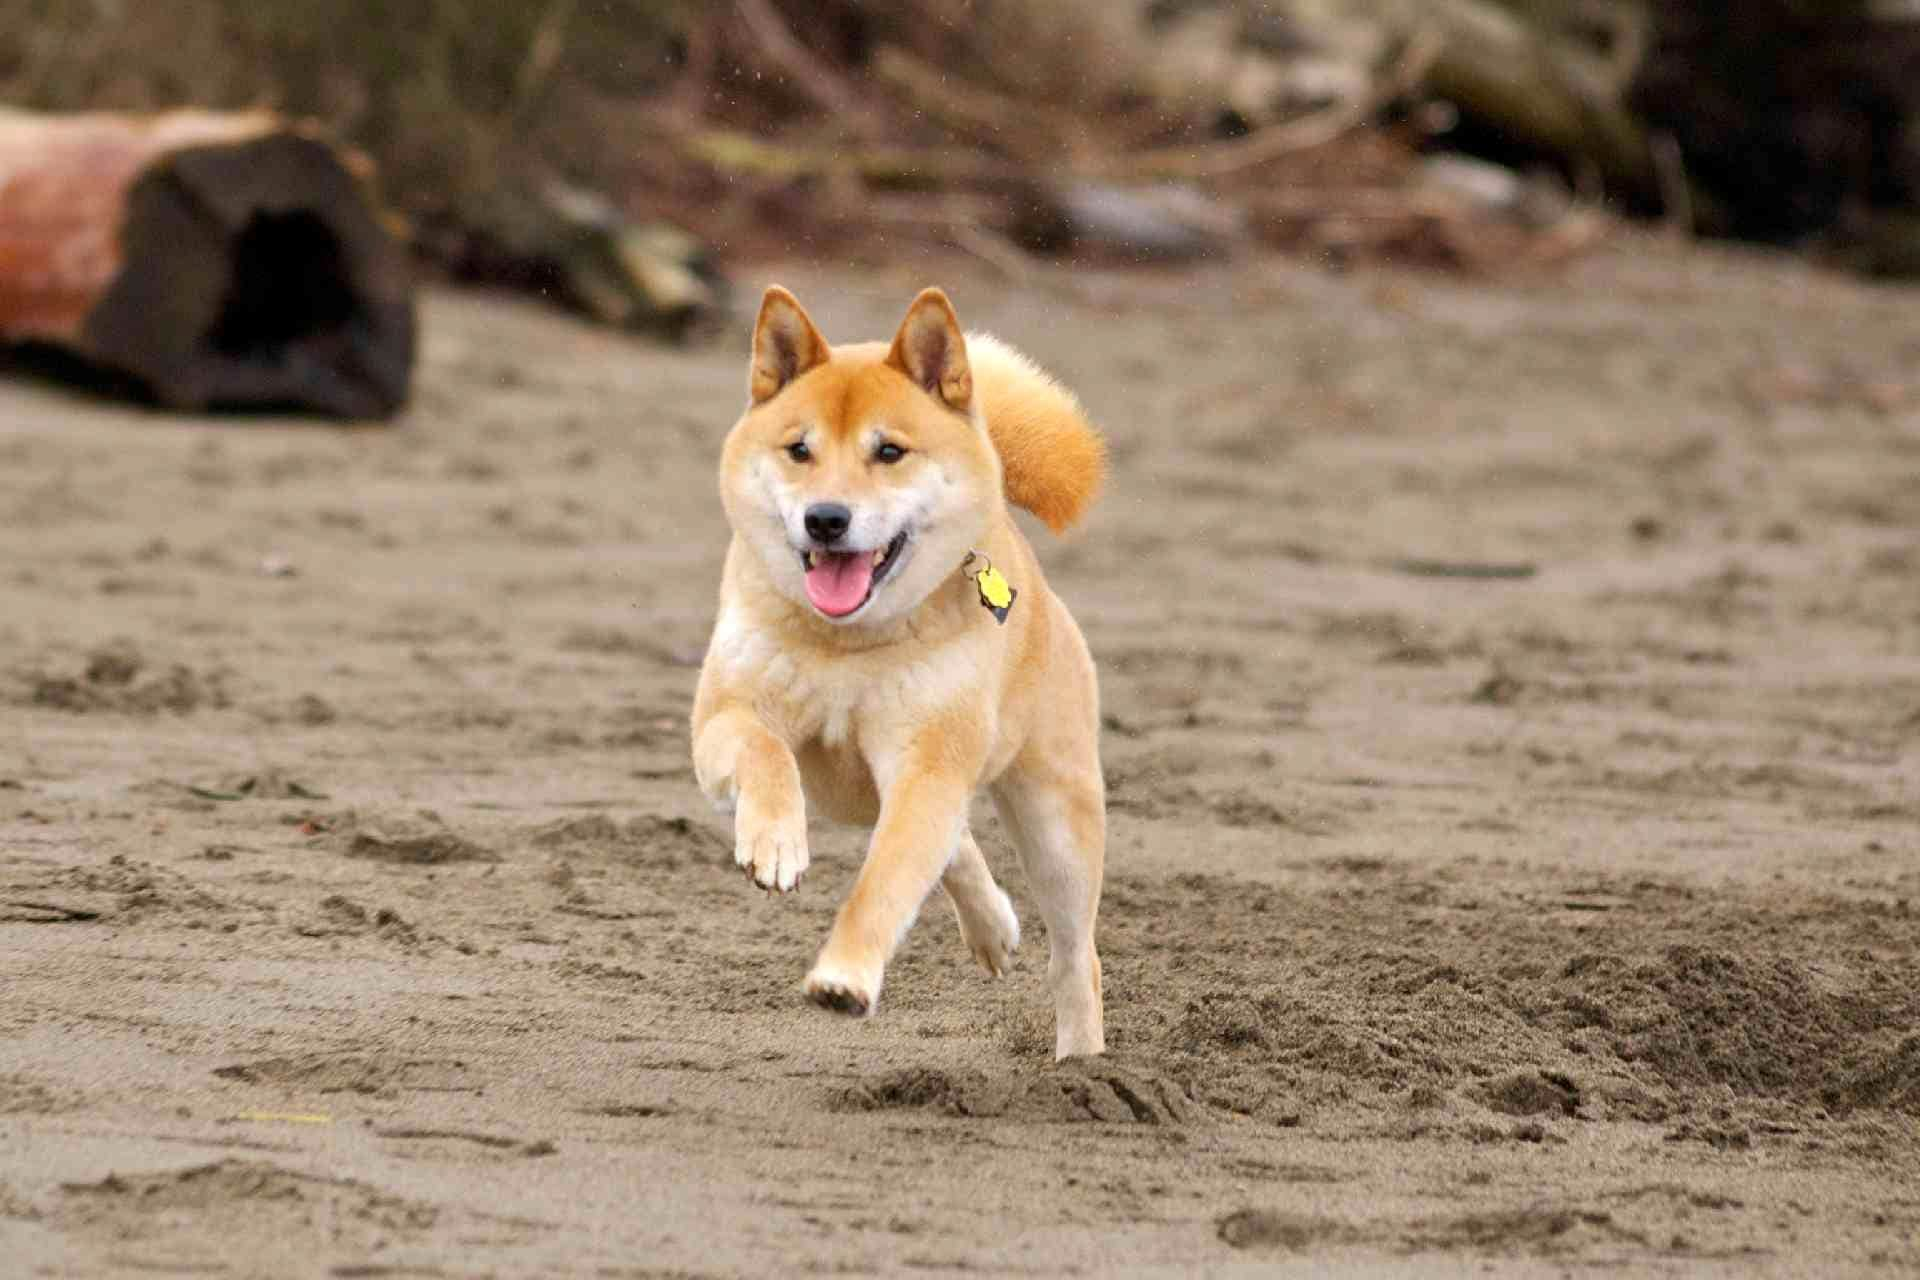 a-cute-dog-runningcute-running-dog-hd-wallpapers-in-1-photo-gallery-ts9u43hm